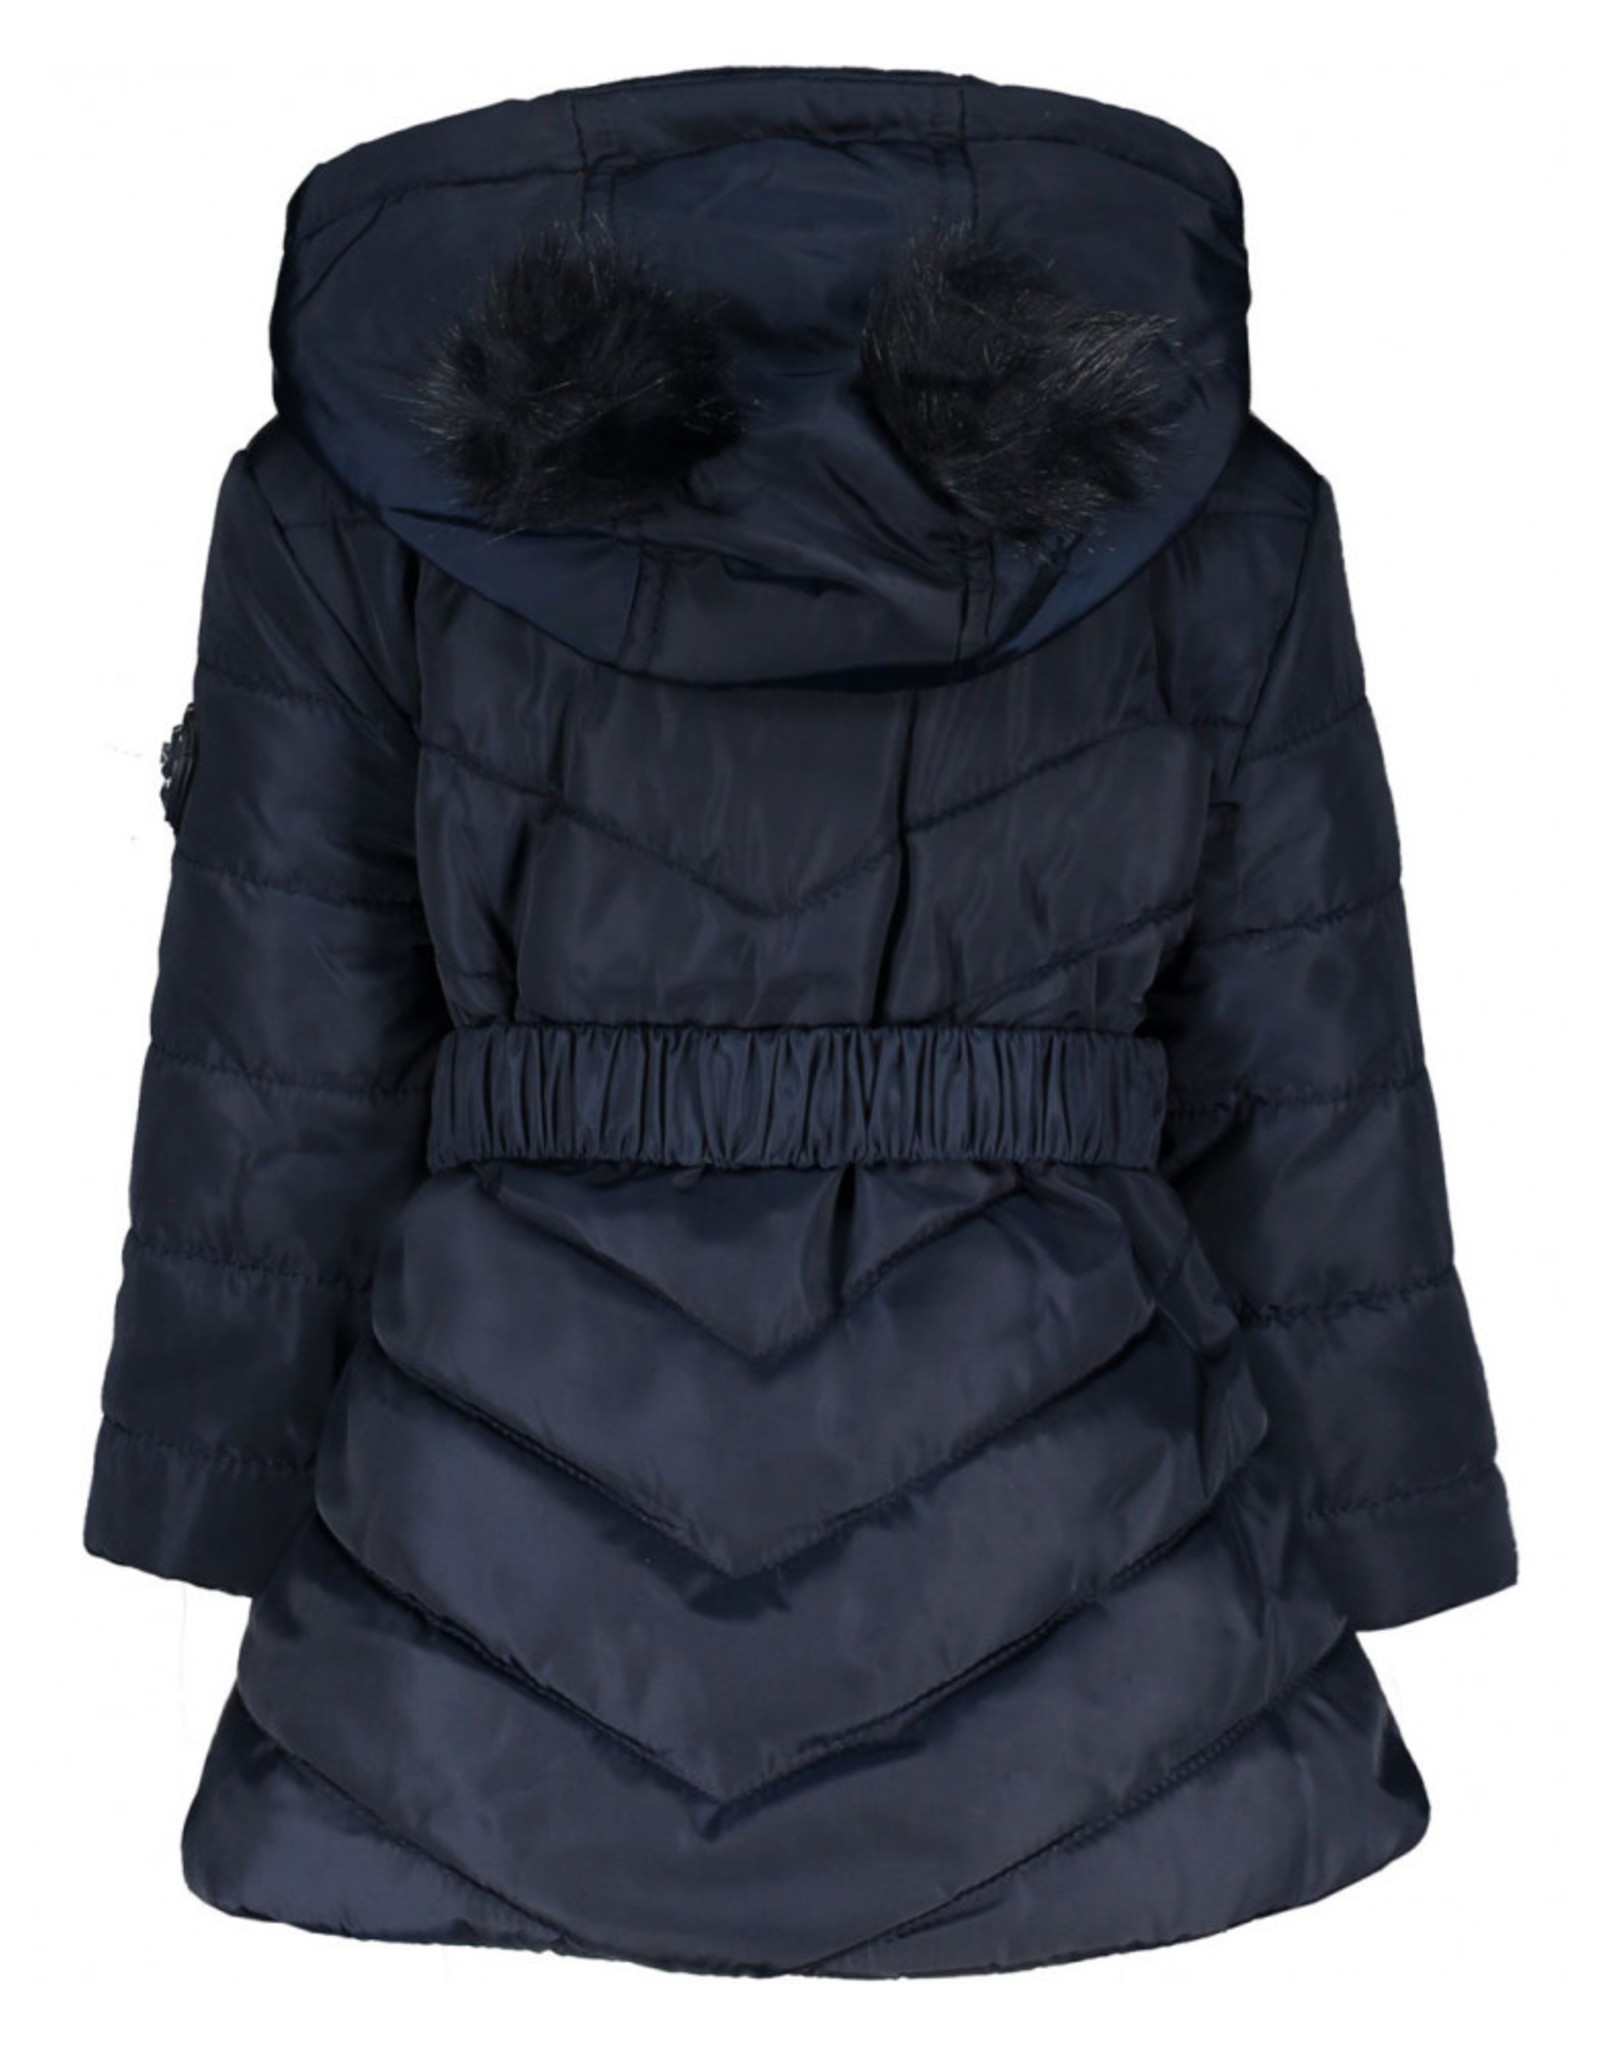 Le Chic Le Chic Quilted Coat Fake-Fur Balls-Blue Navy